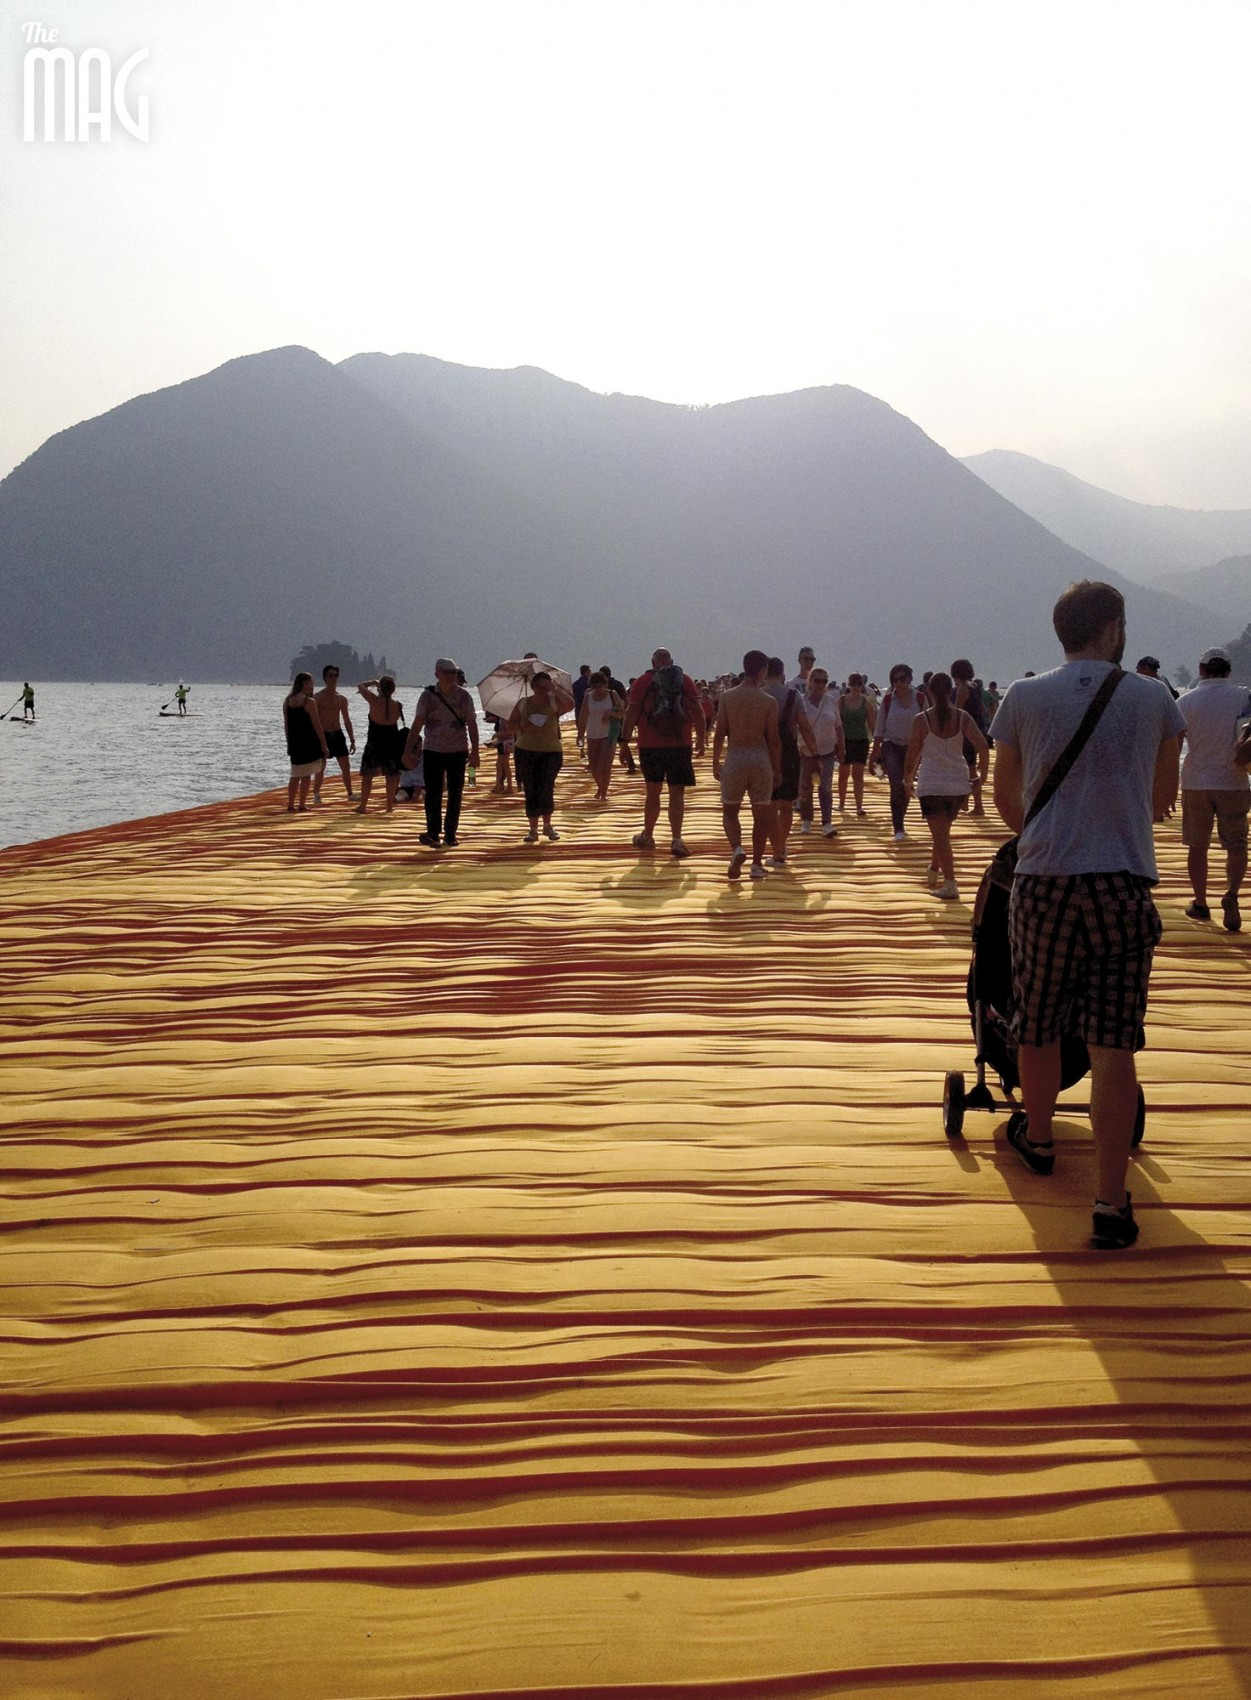 the-flaoting-piers-christo-lago-iseo-the-mag-foto-emanuela-veschi-4